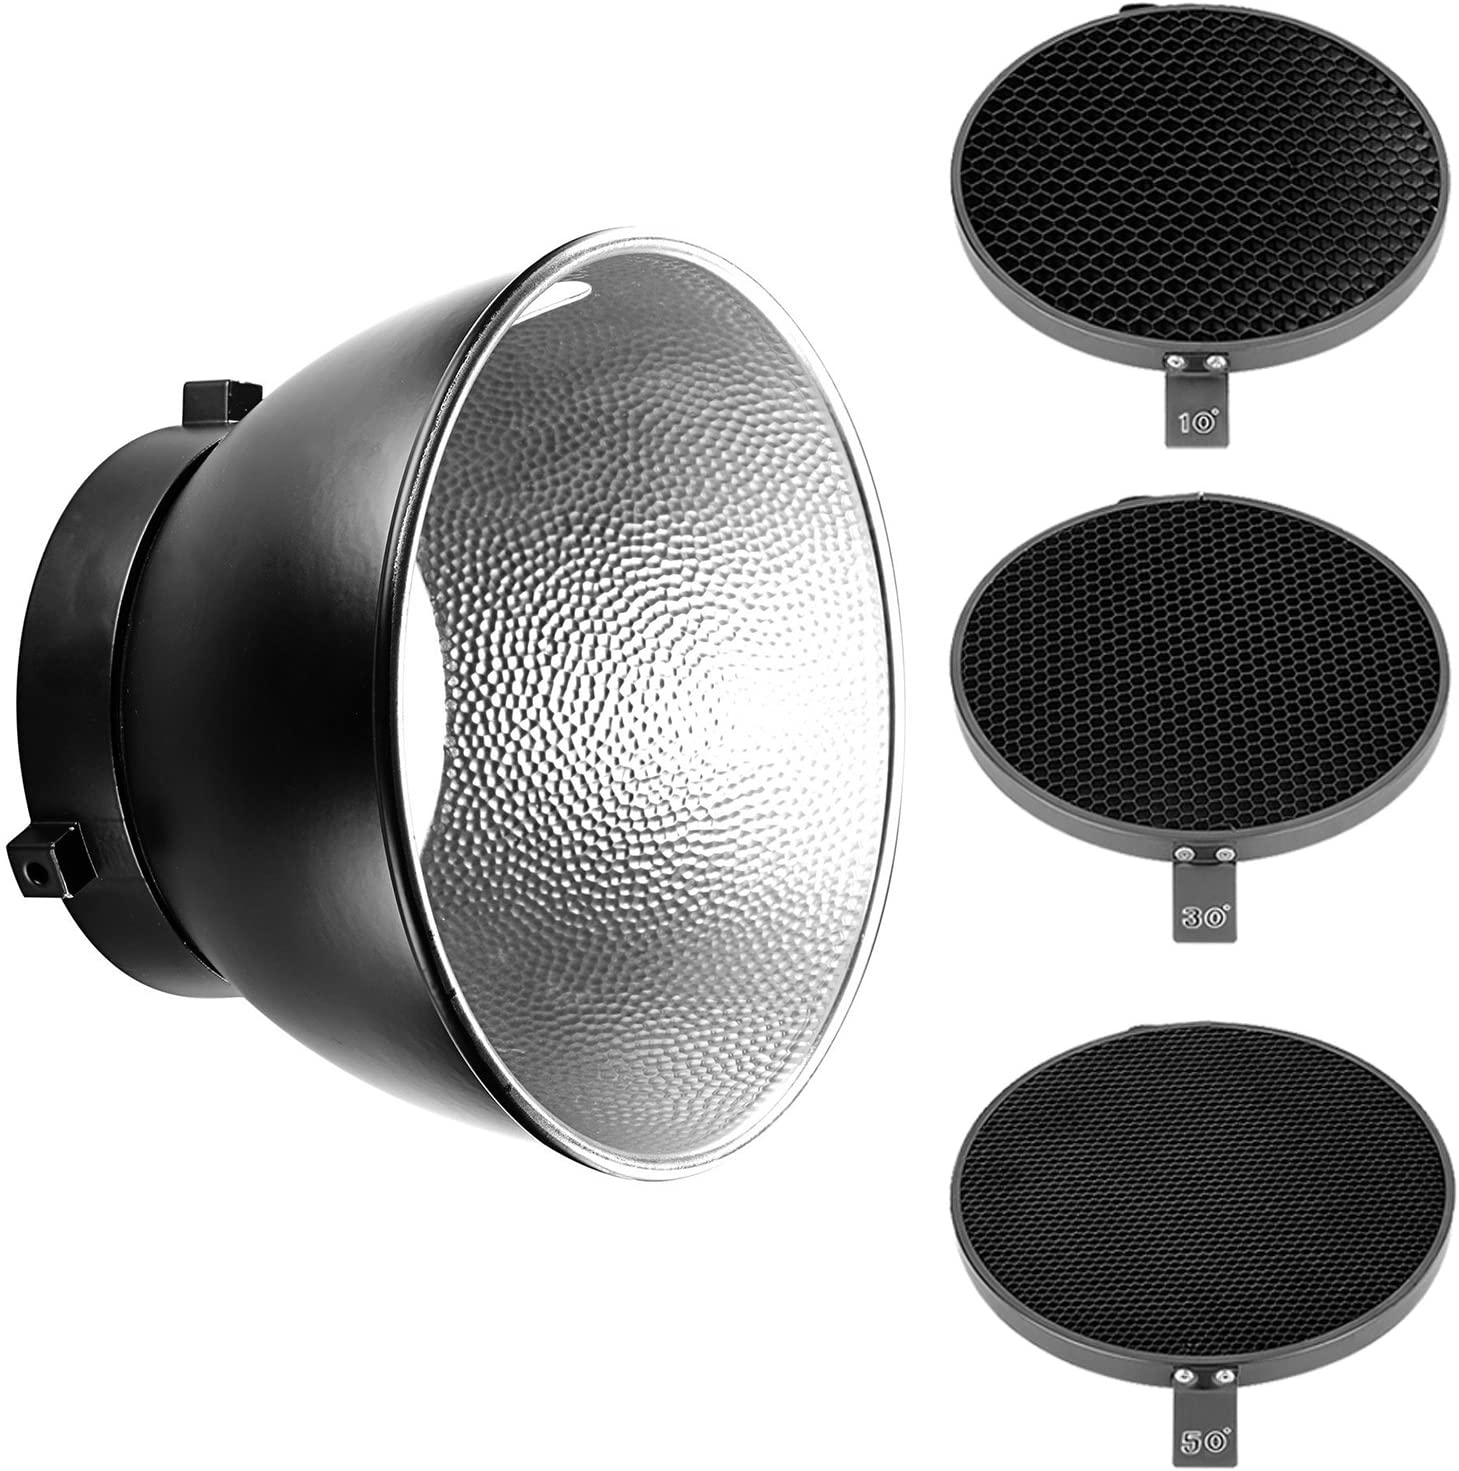 etc Standard Lamp Shade Kit with 60 Degree Honeycomb Grid /& Soft Diffuser Cover for Portrait Art Pets Flowers fosa 7in Standard Reflector for Bowens Mount